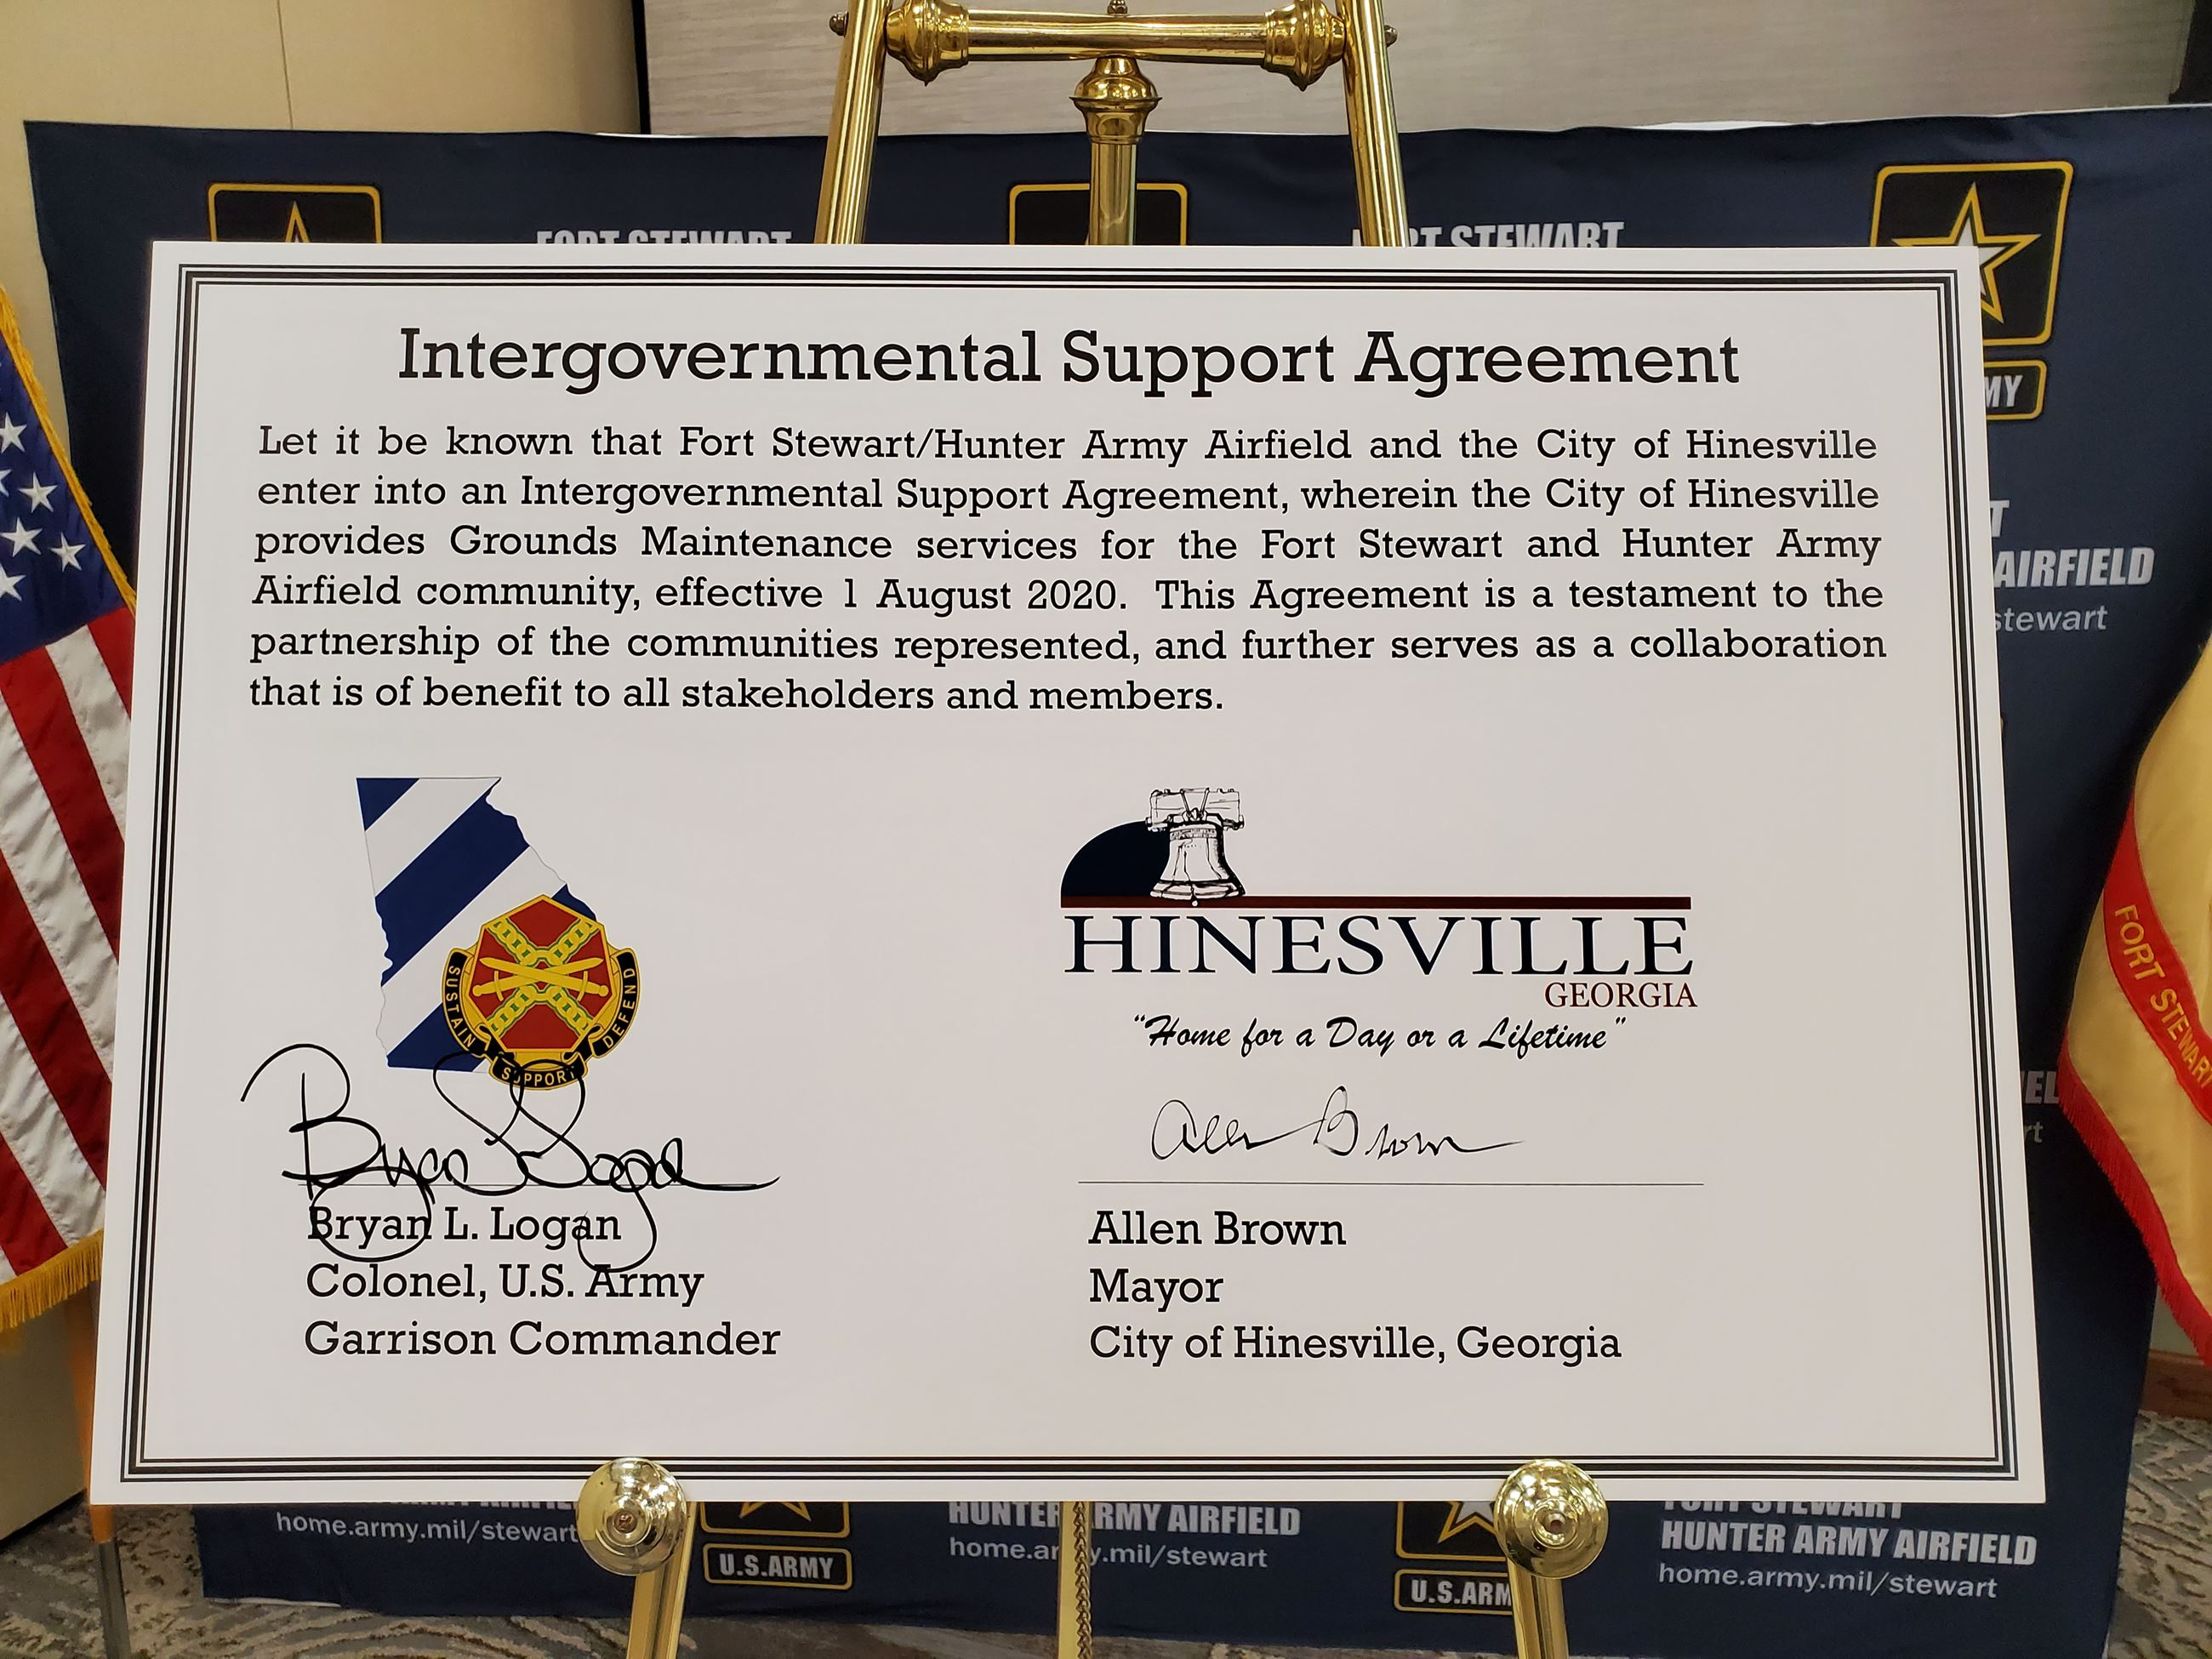 Signed Copy of the City and Fort Stewart's Intergovernmental Support Agreement (IGSA) for grounds